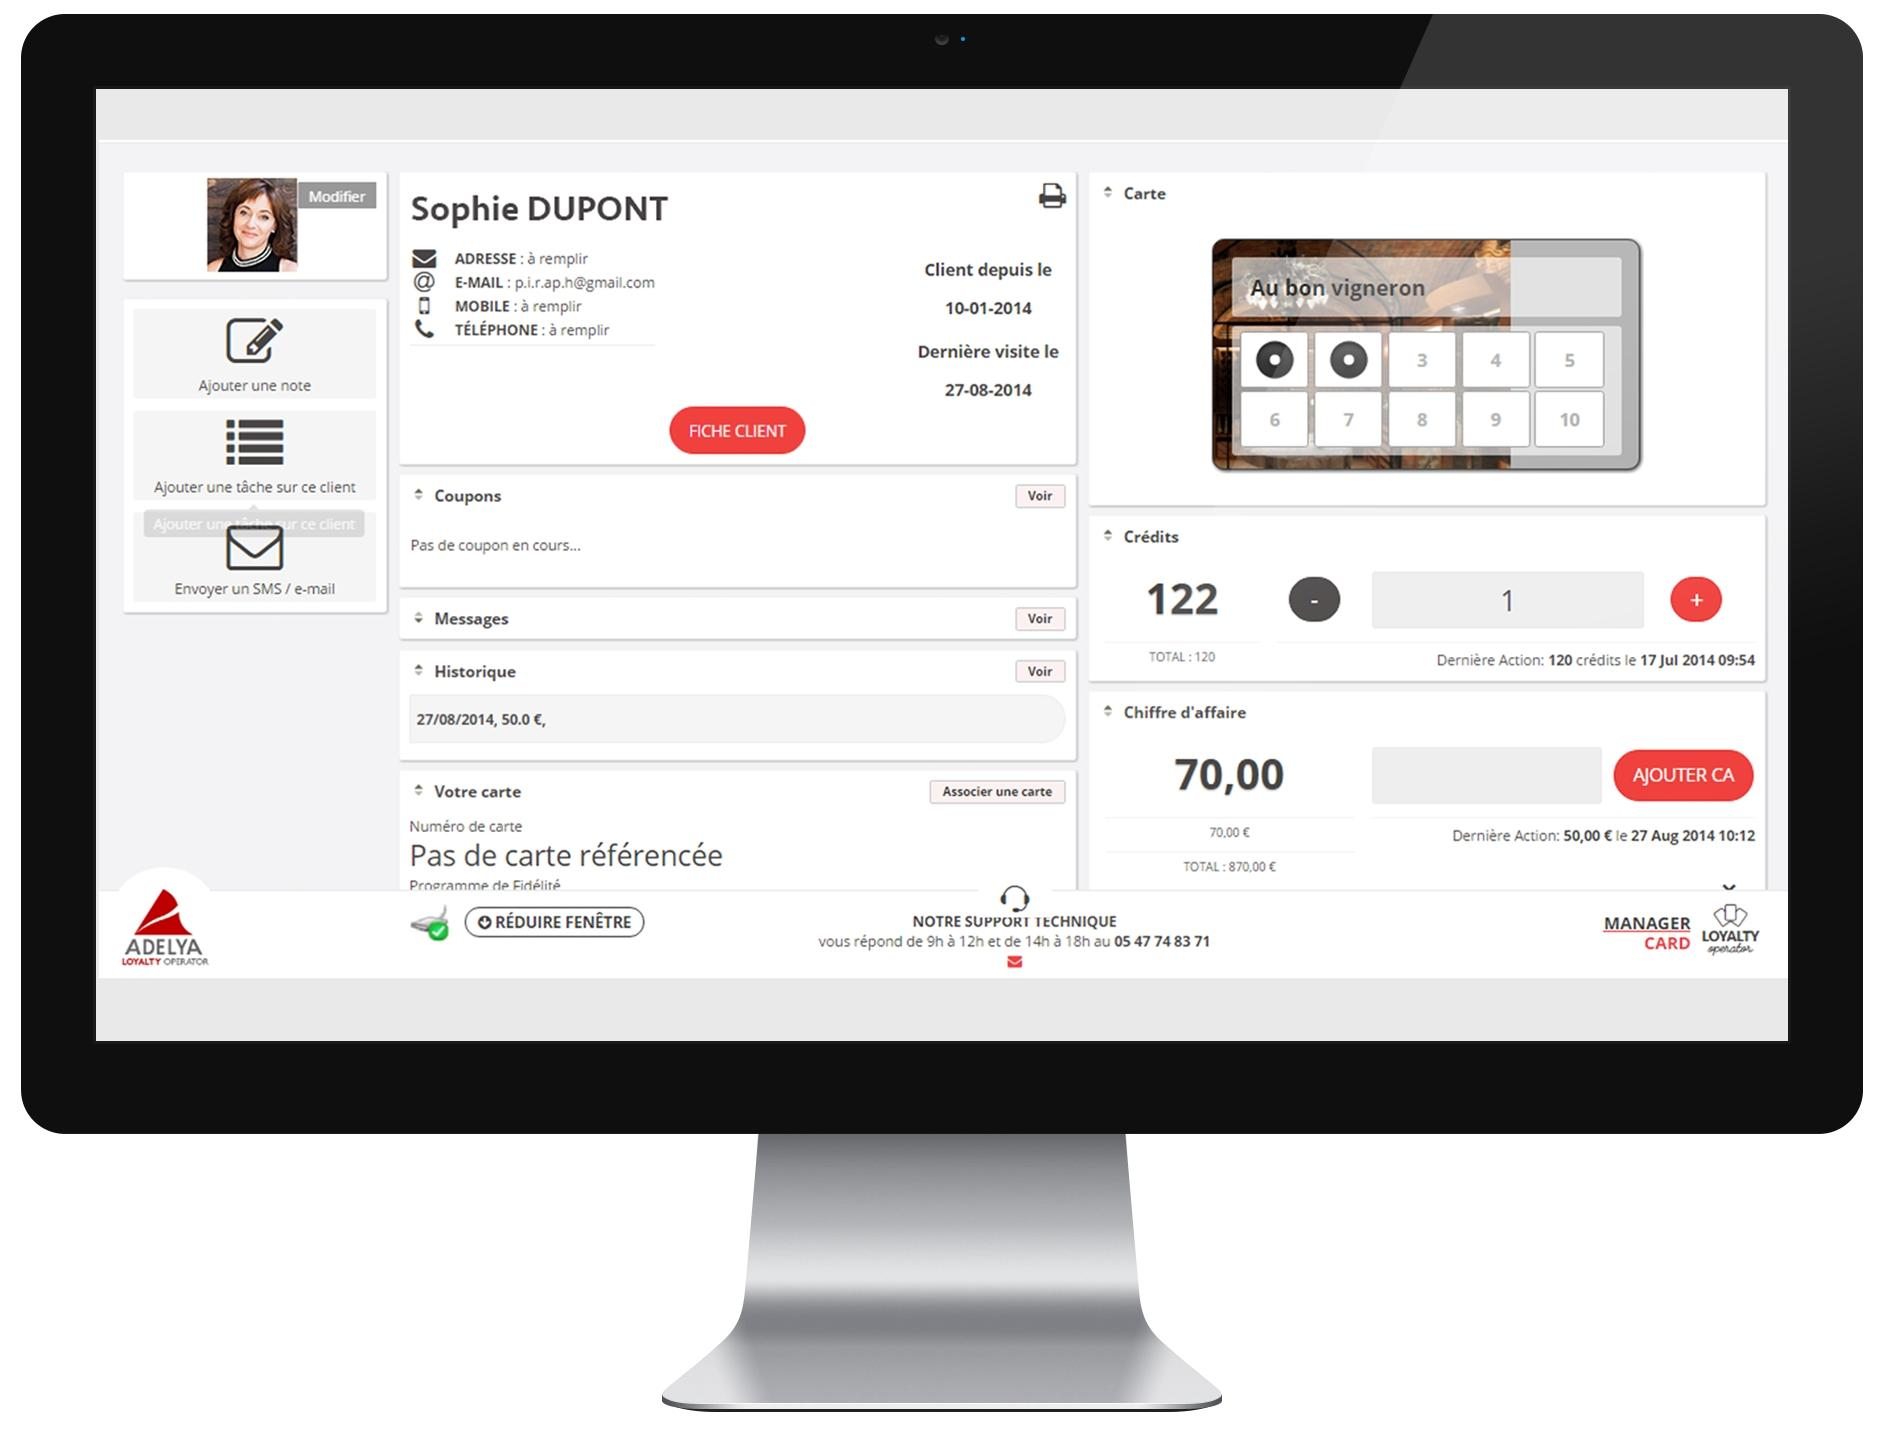 Fiche Client Loyalty Operator